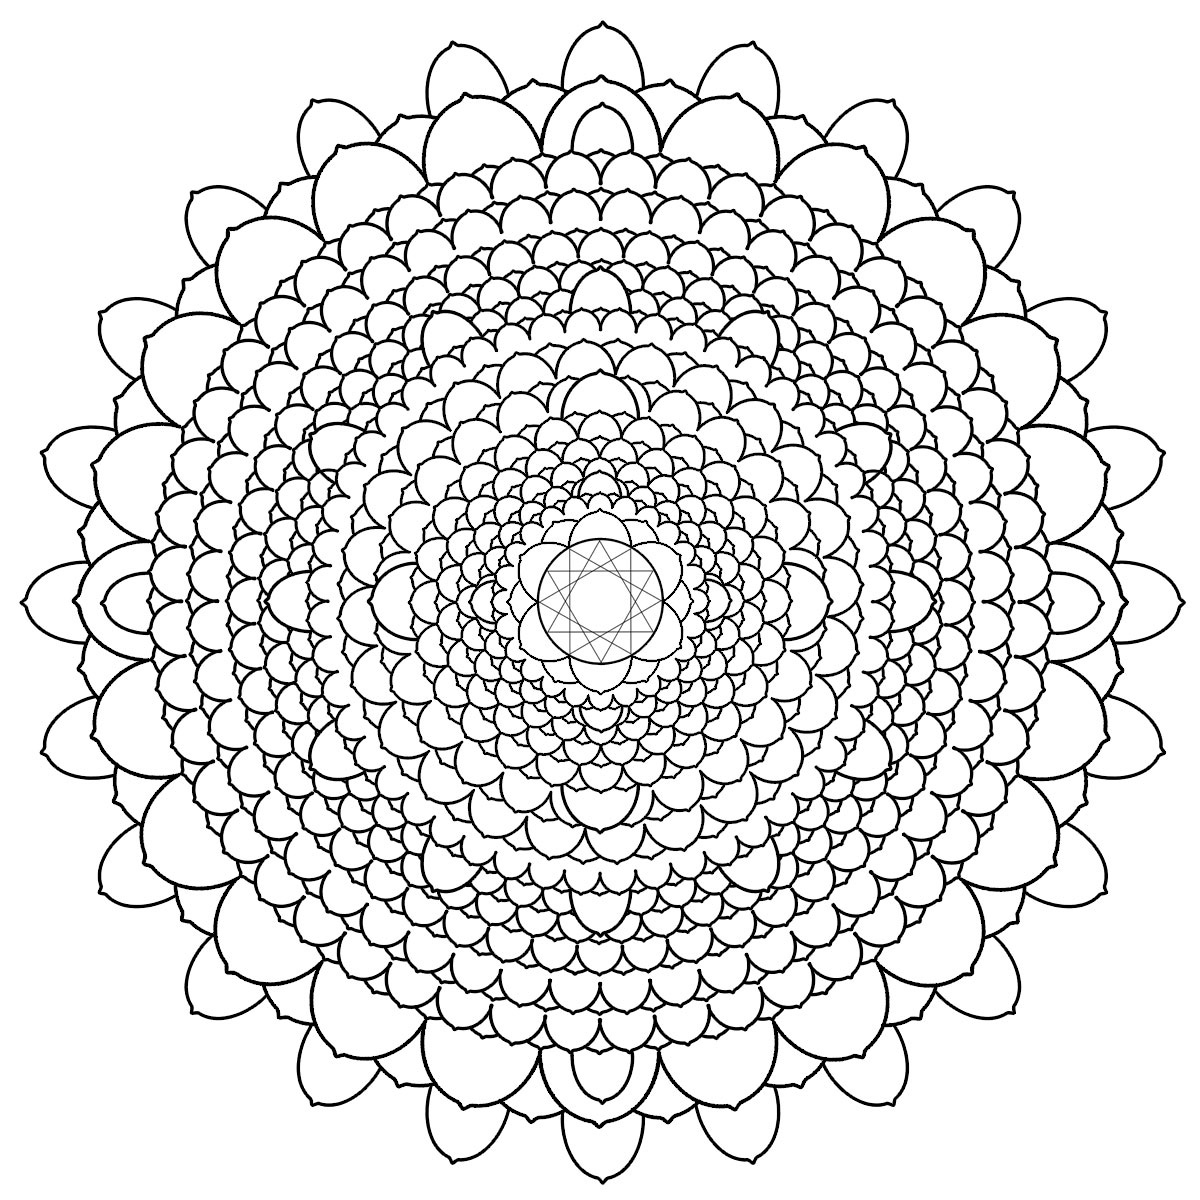 Mandala Drawing Printable at GetDrawings.com | Free for personal use ...